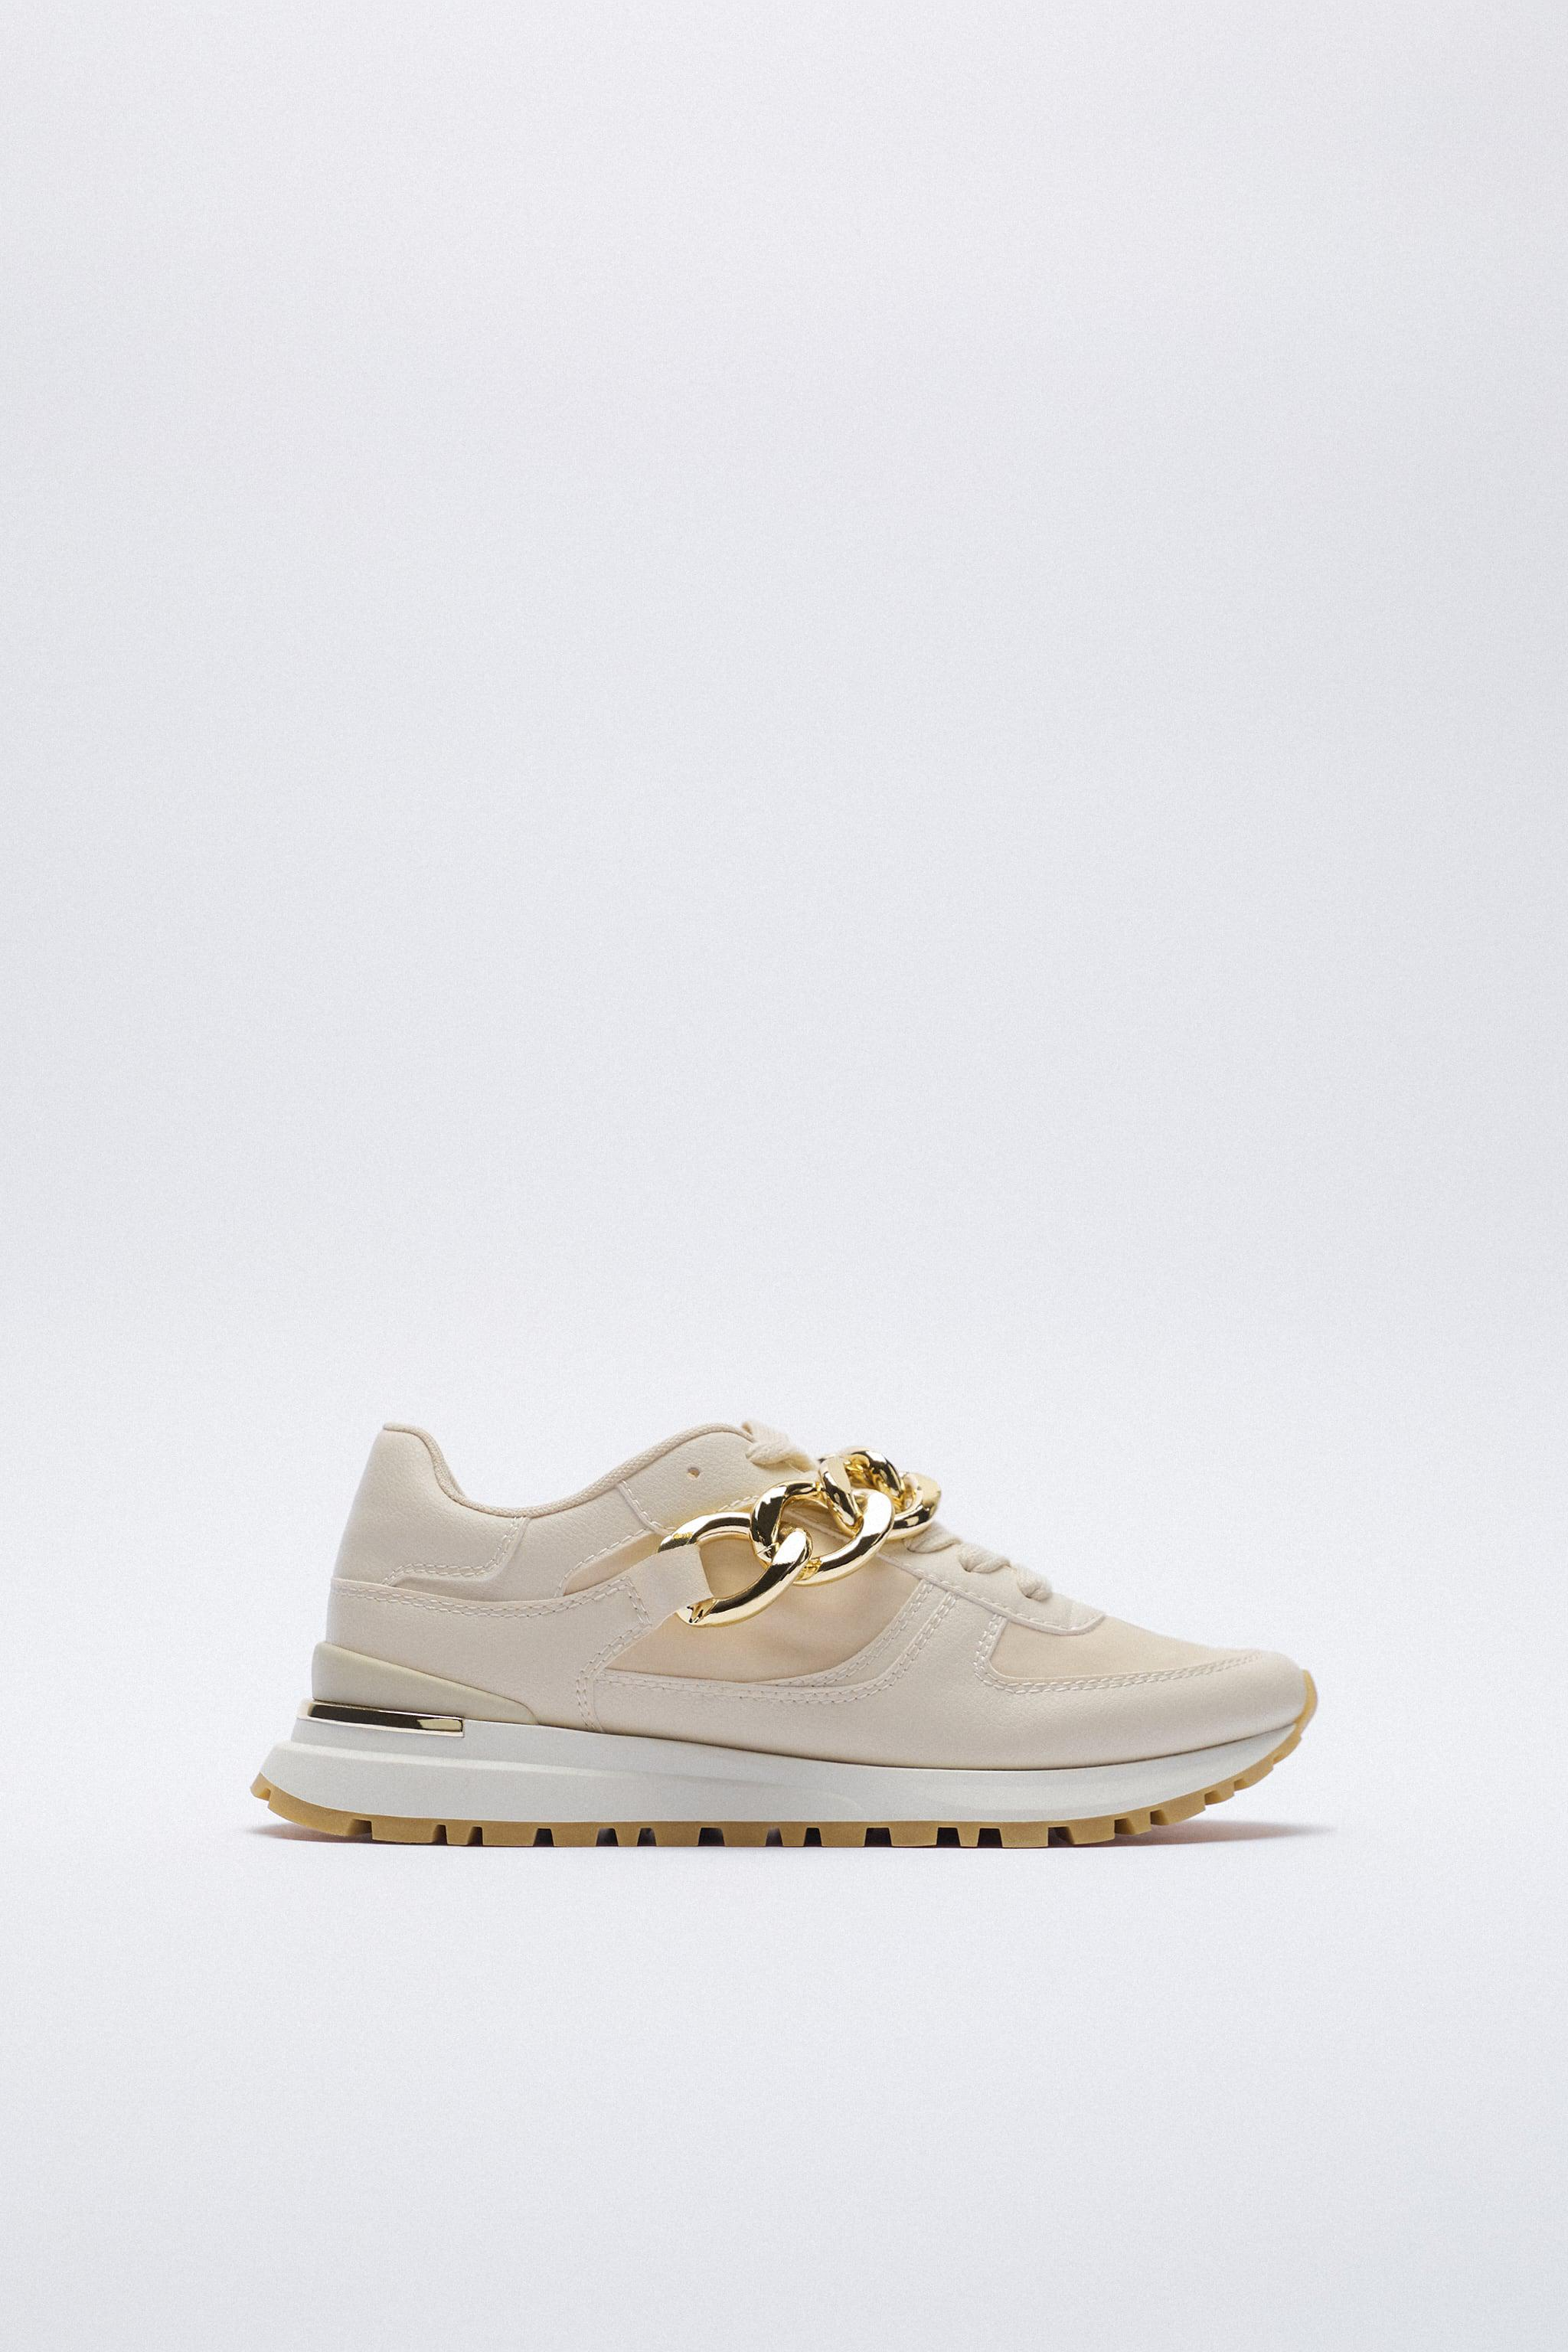 THICK CHAIN SNEAKERS